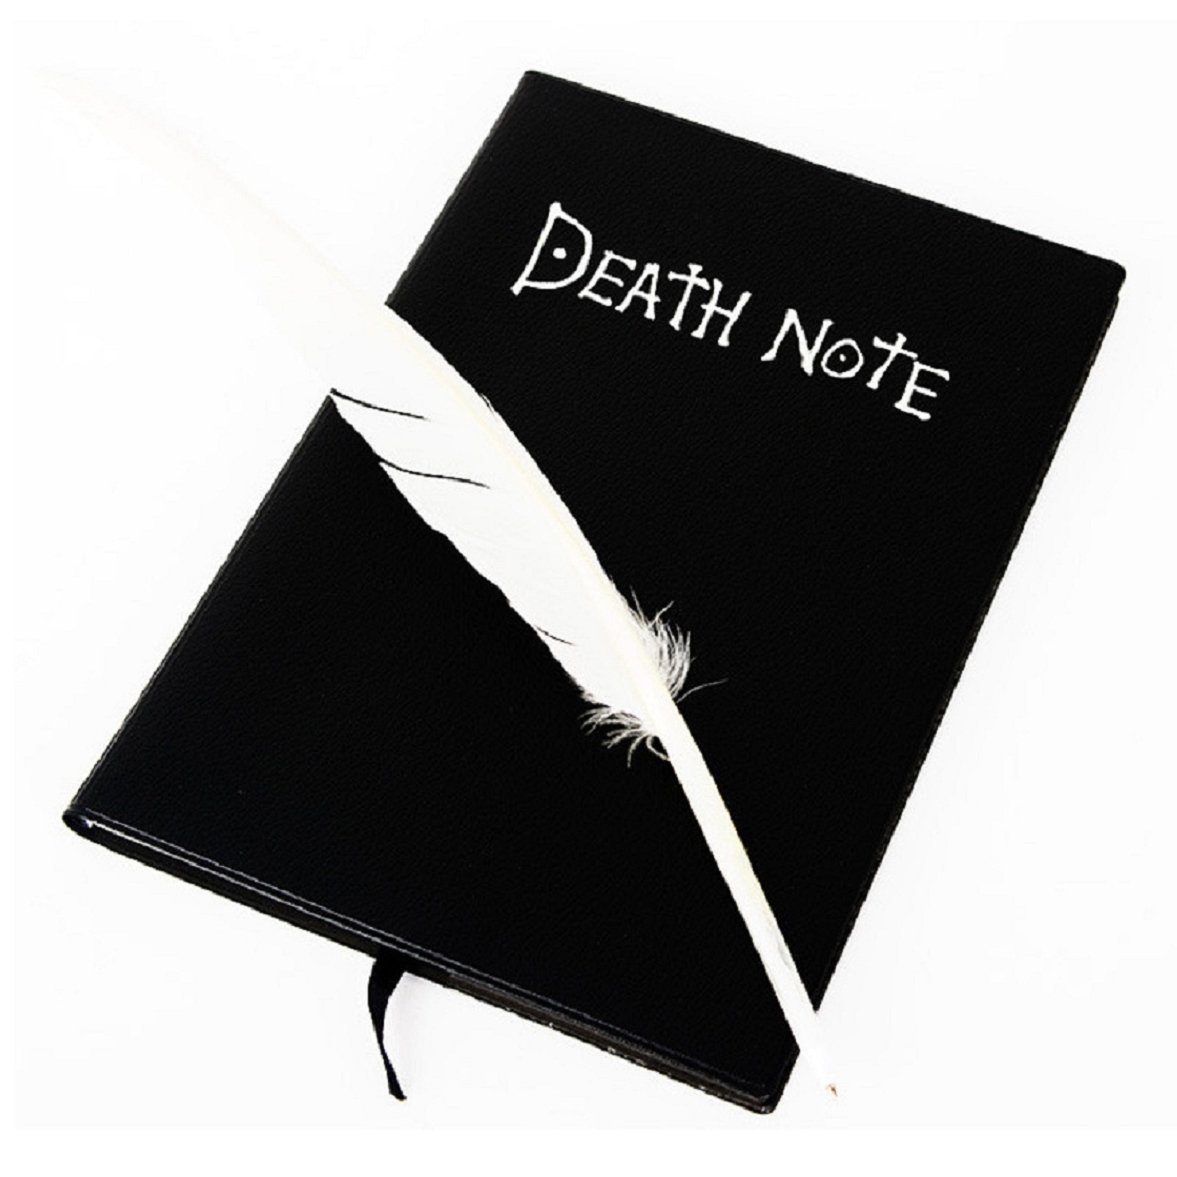 Death Note - Notebook: Amazon.co.uk: Office Products